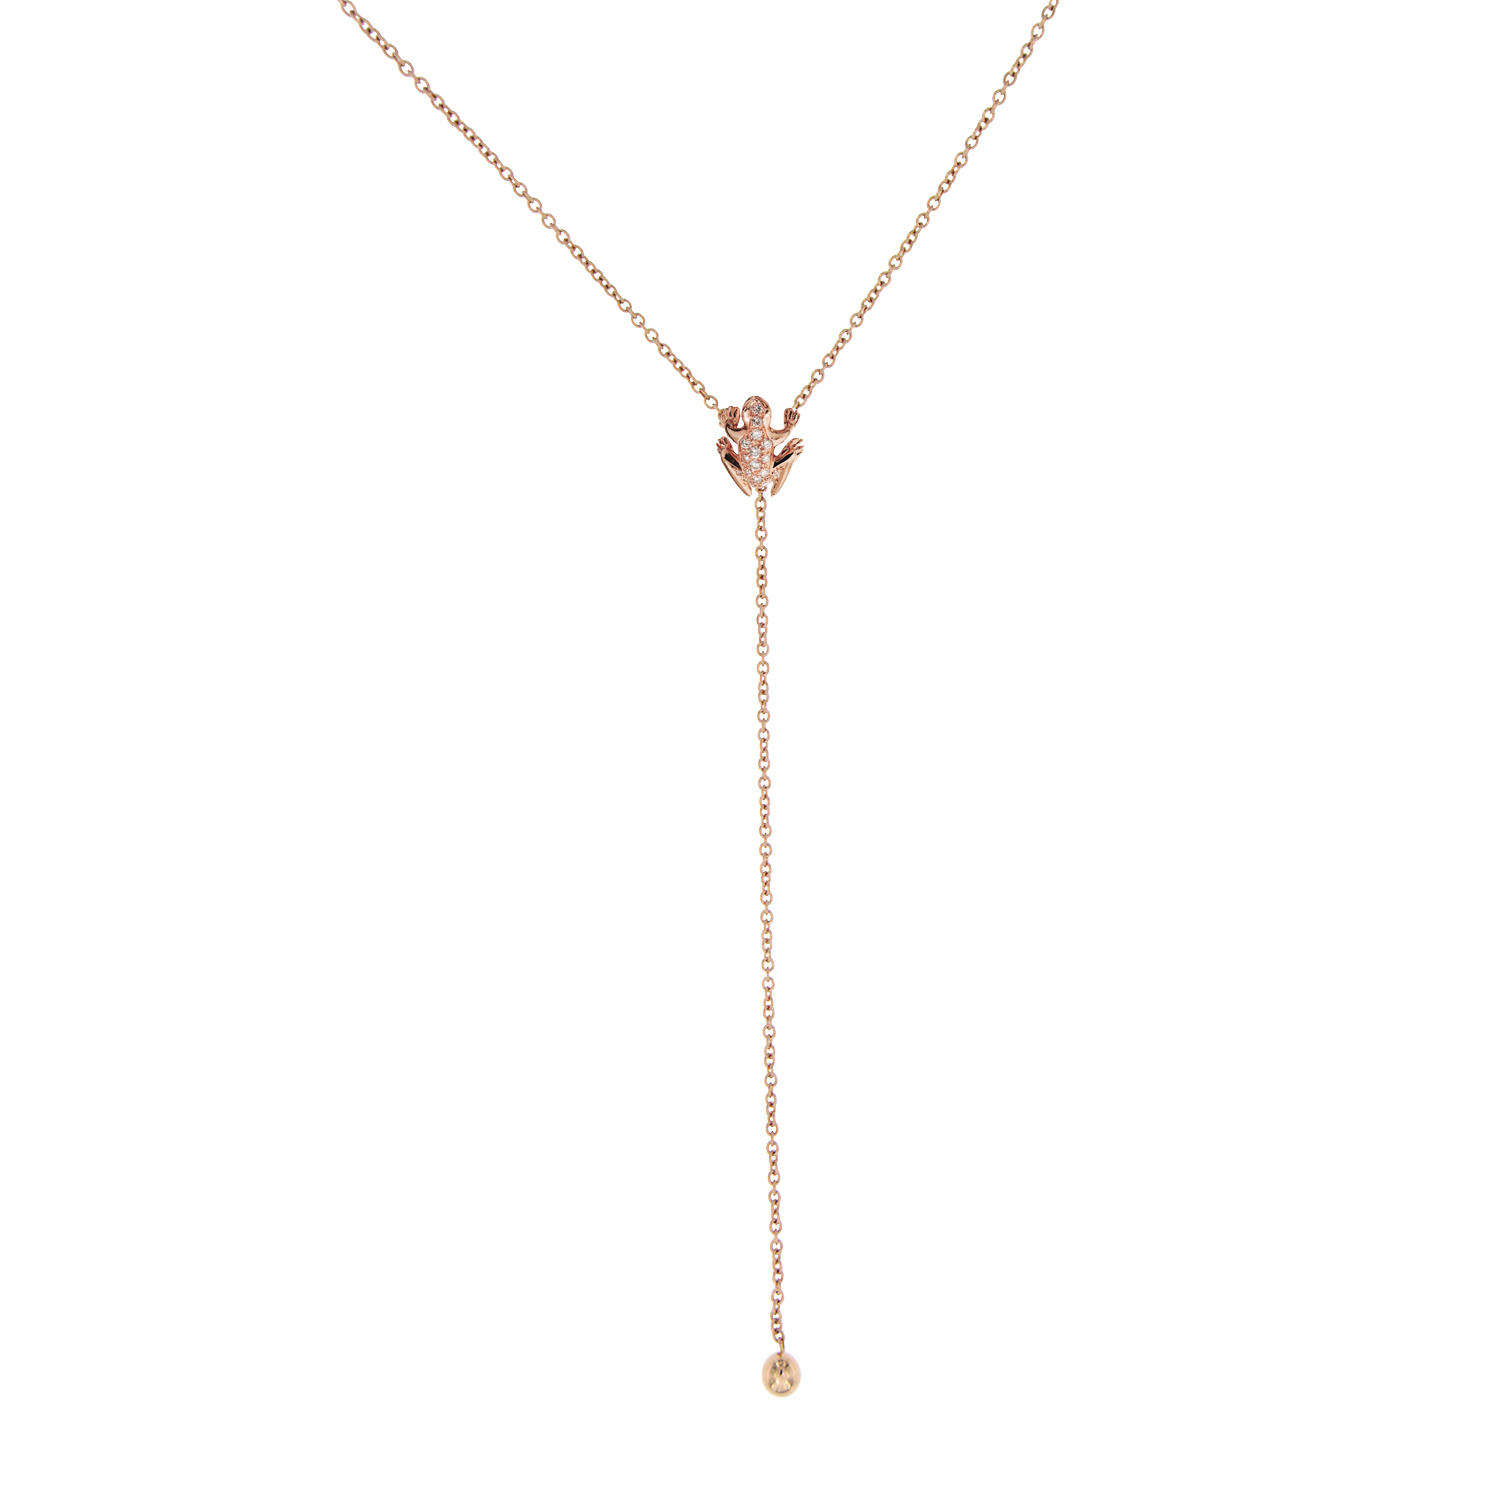 Collana Y-shape in oro rosa e diamanti